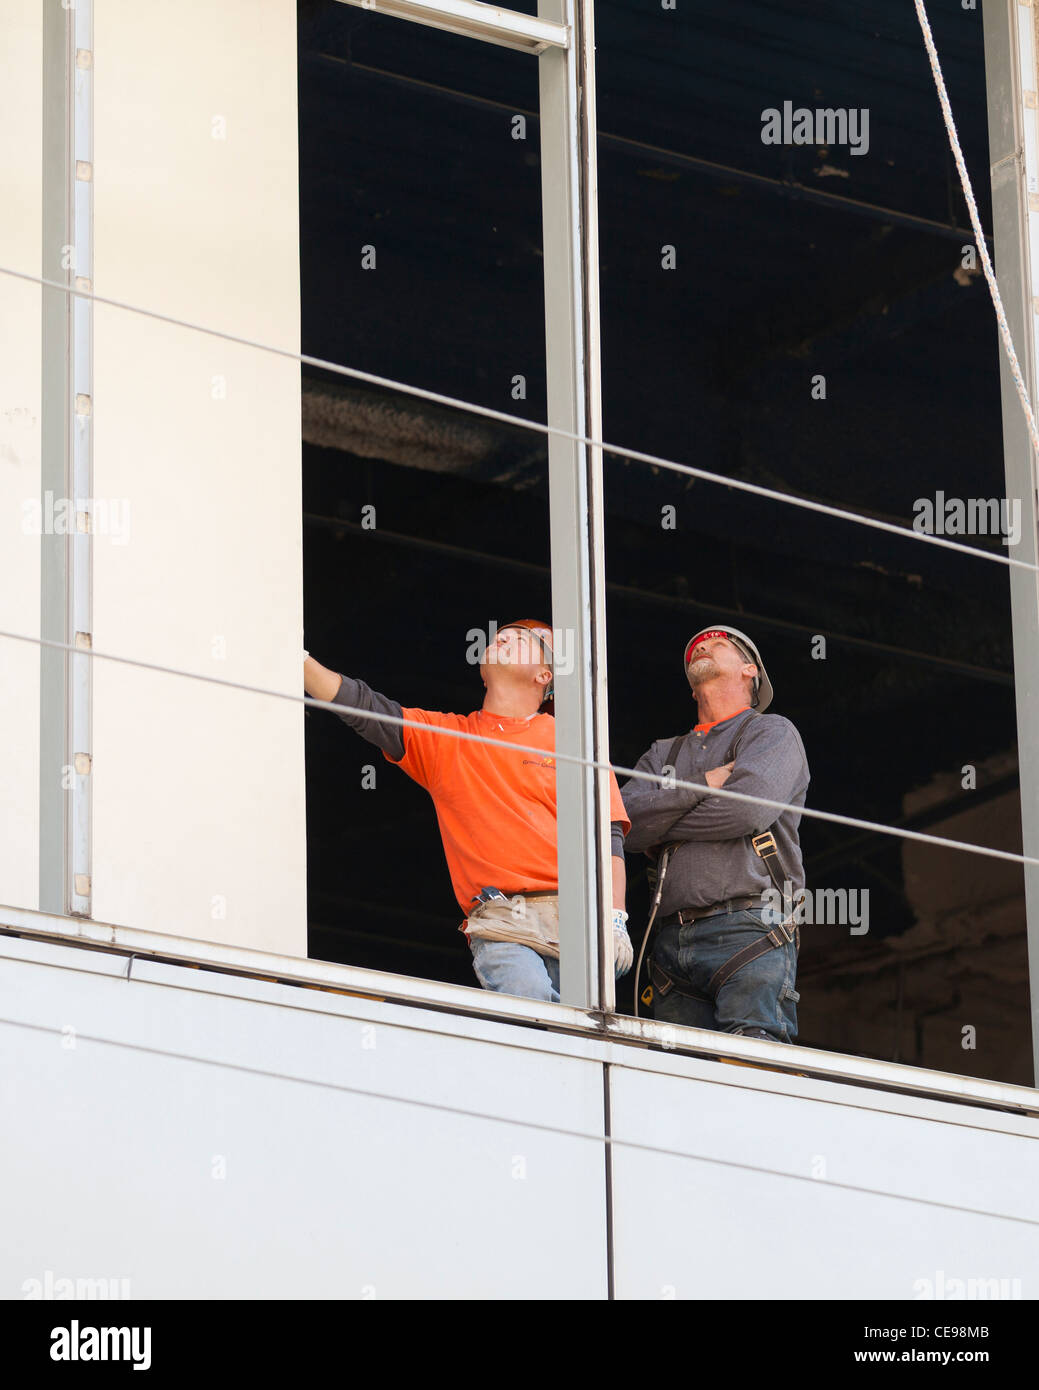 Construction workers working in building - Stock Image